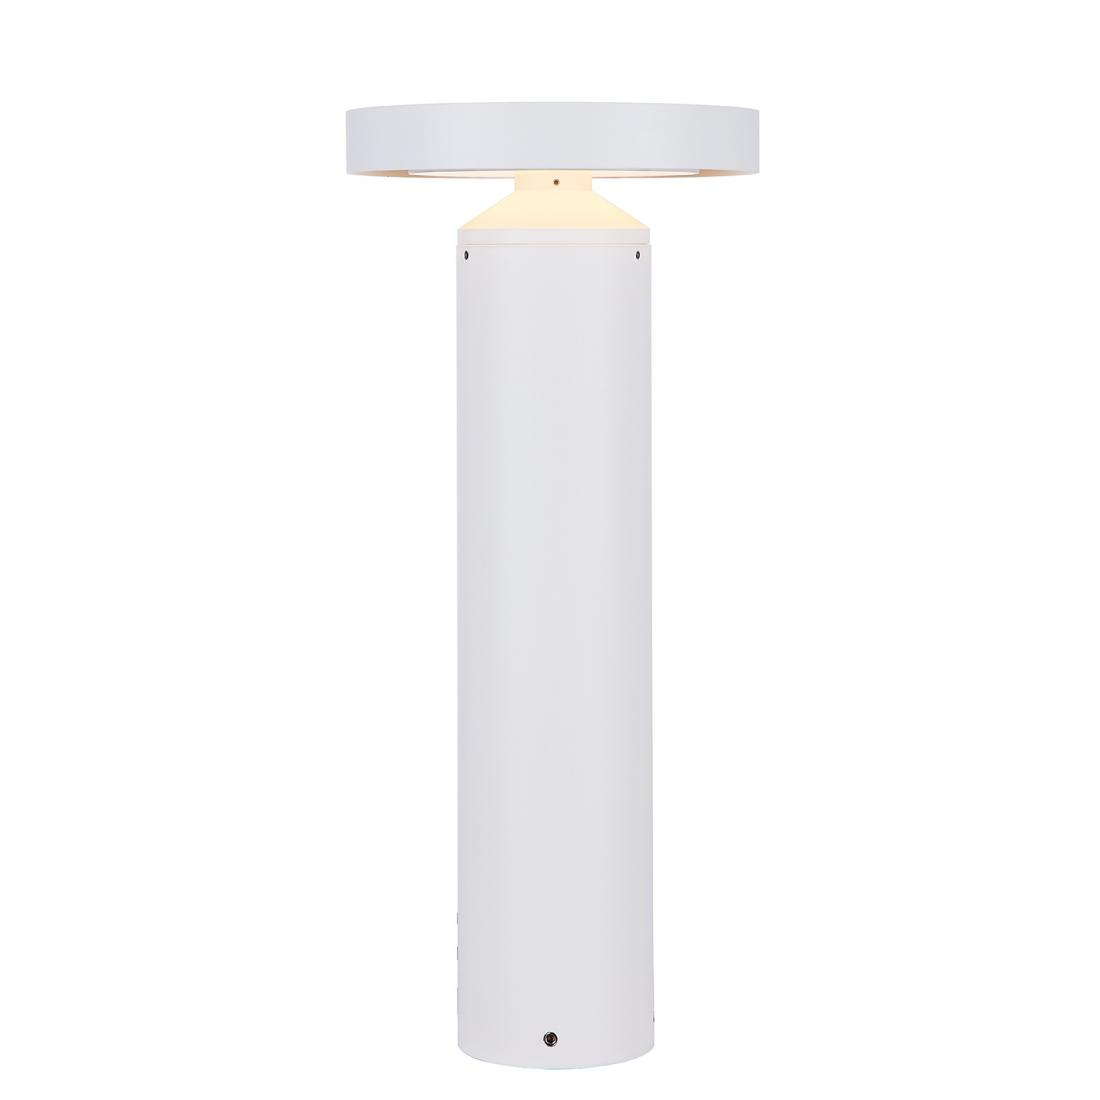 IP65 waterproof garden lamp